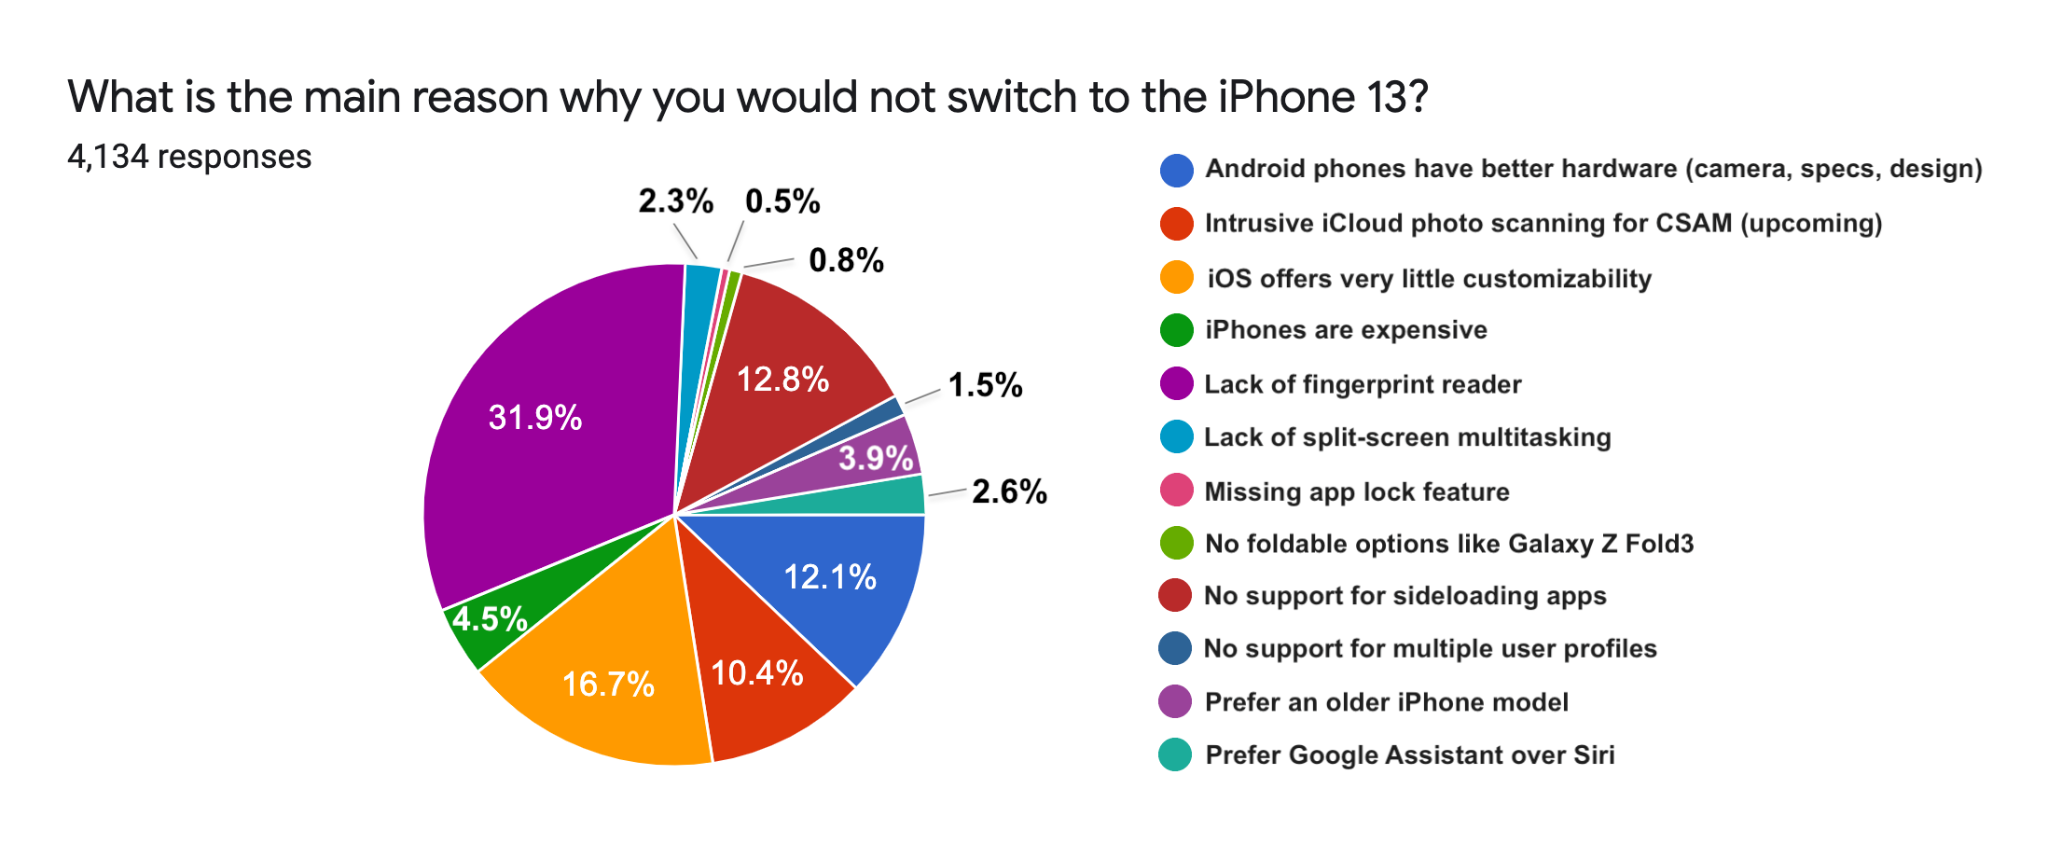 What is the main reason you would not switch to an iPhone 13?